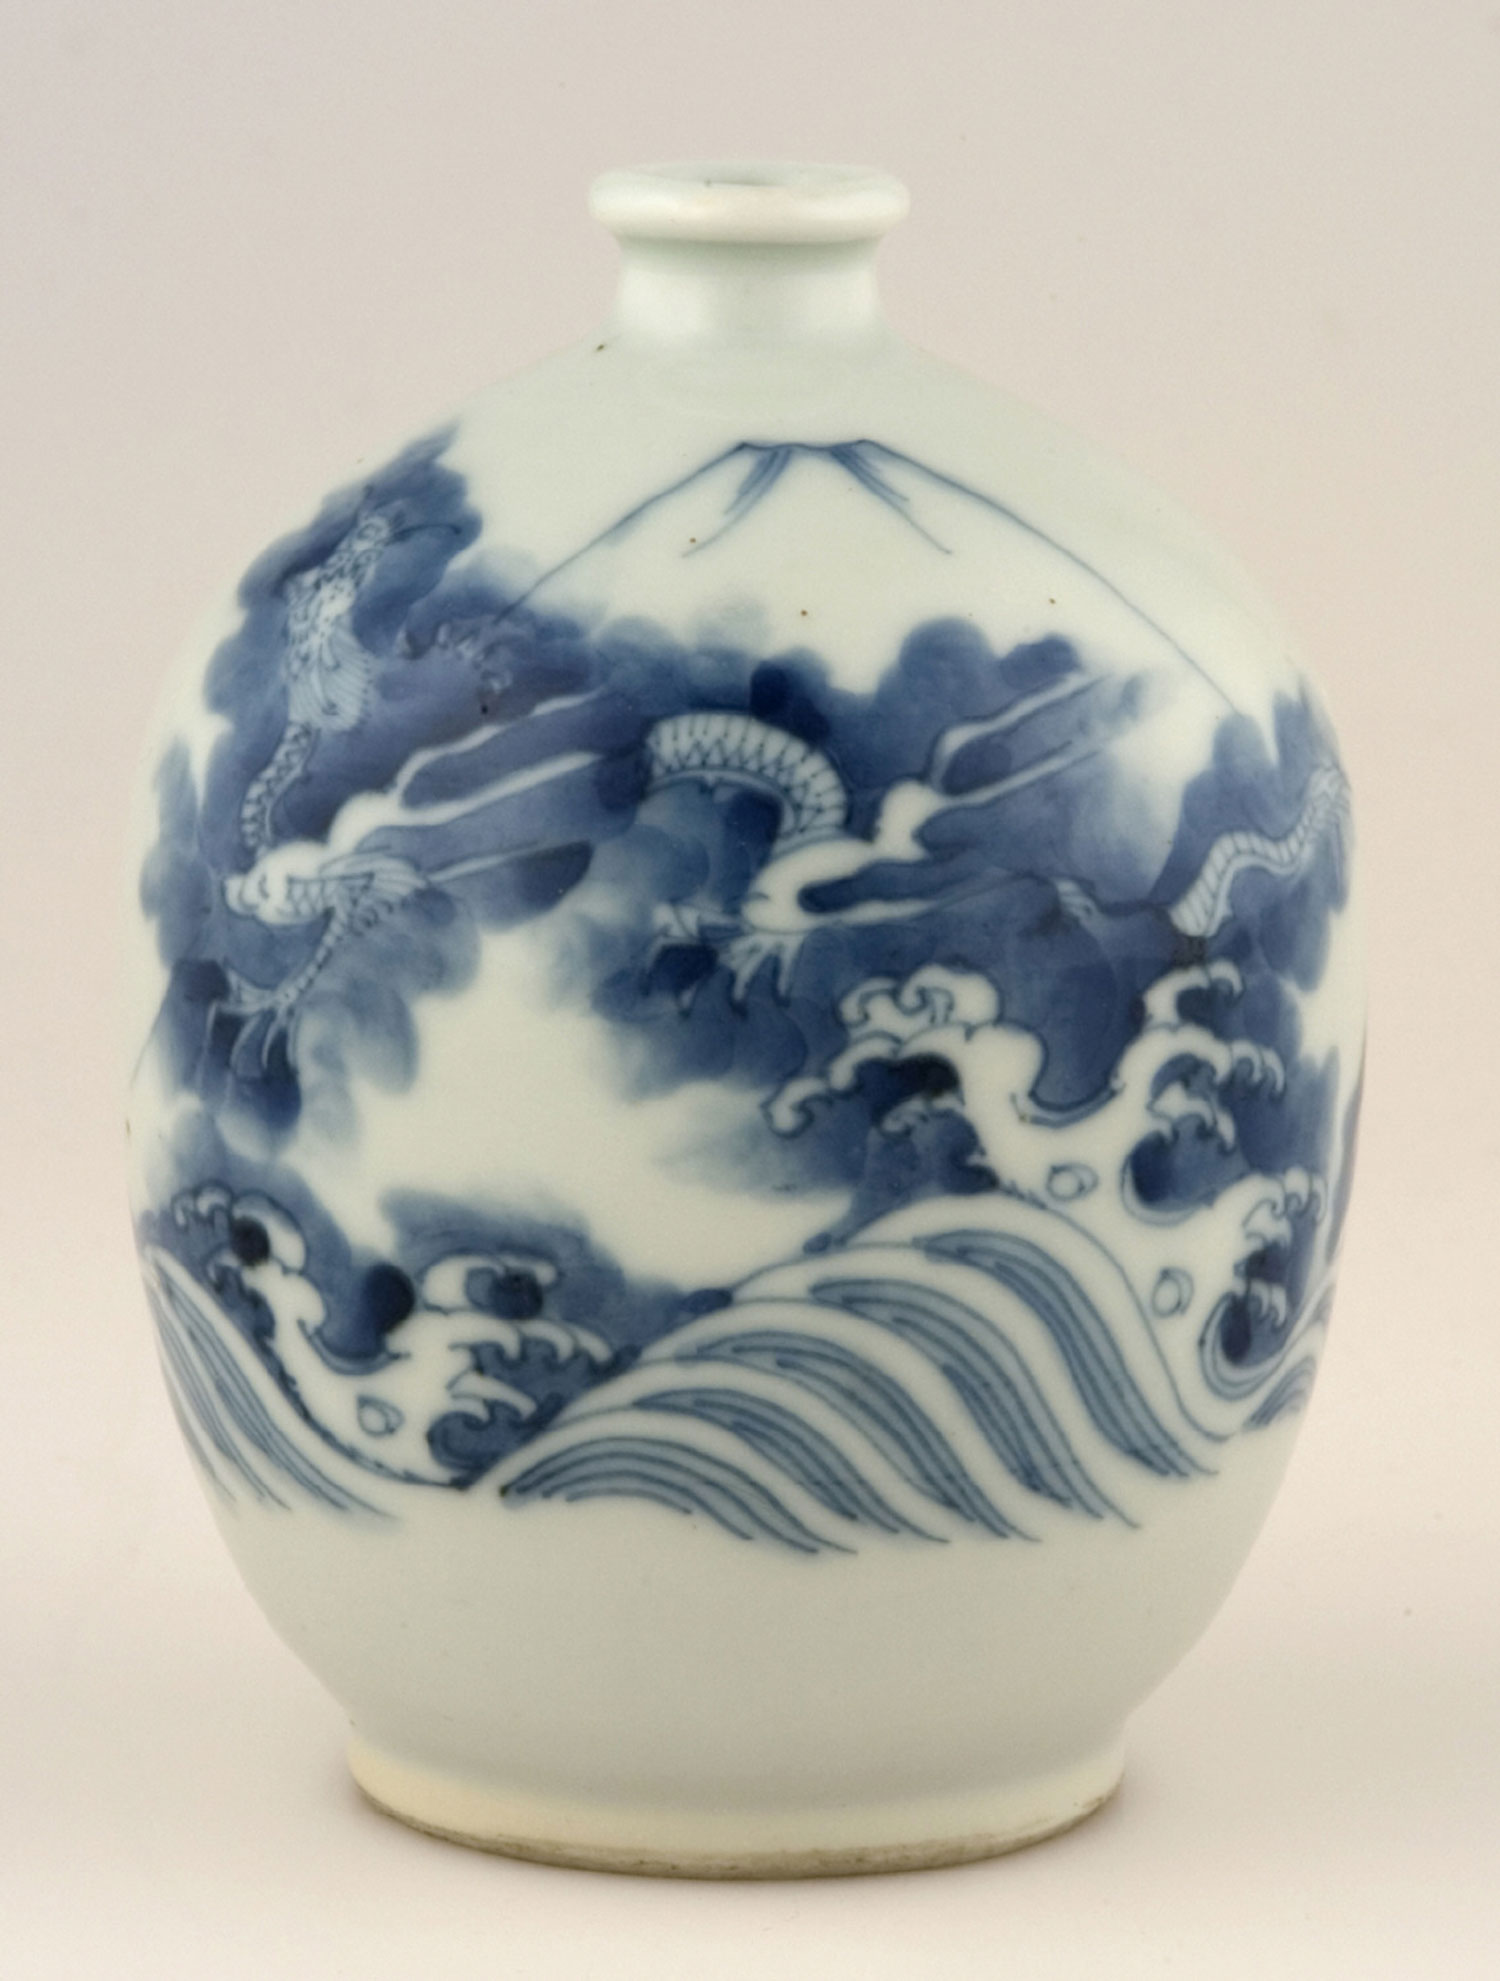 Bottle with design of Waves, a Dragon, and Mount Fuji